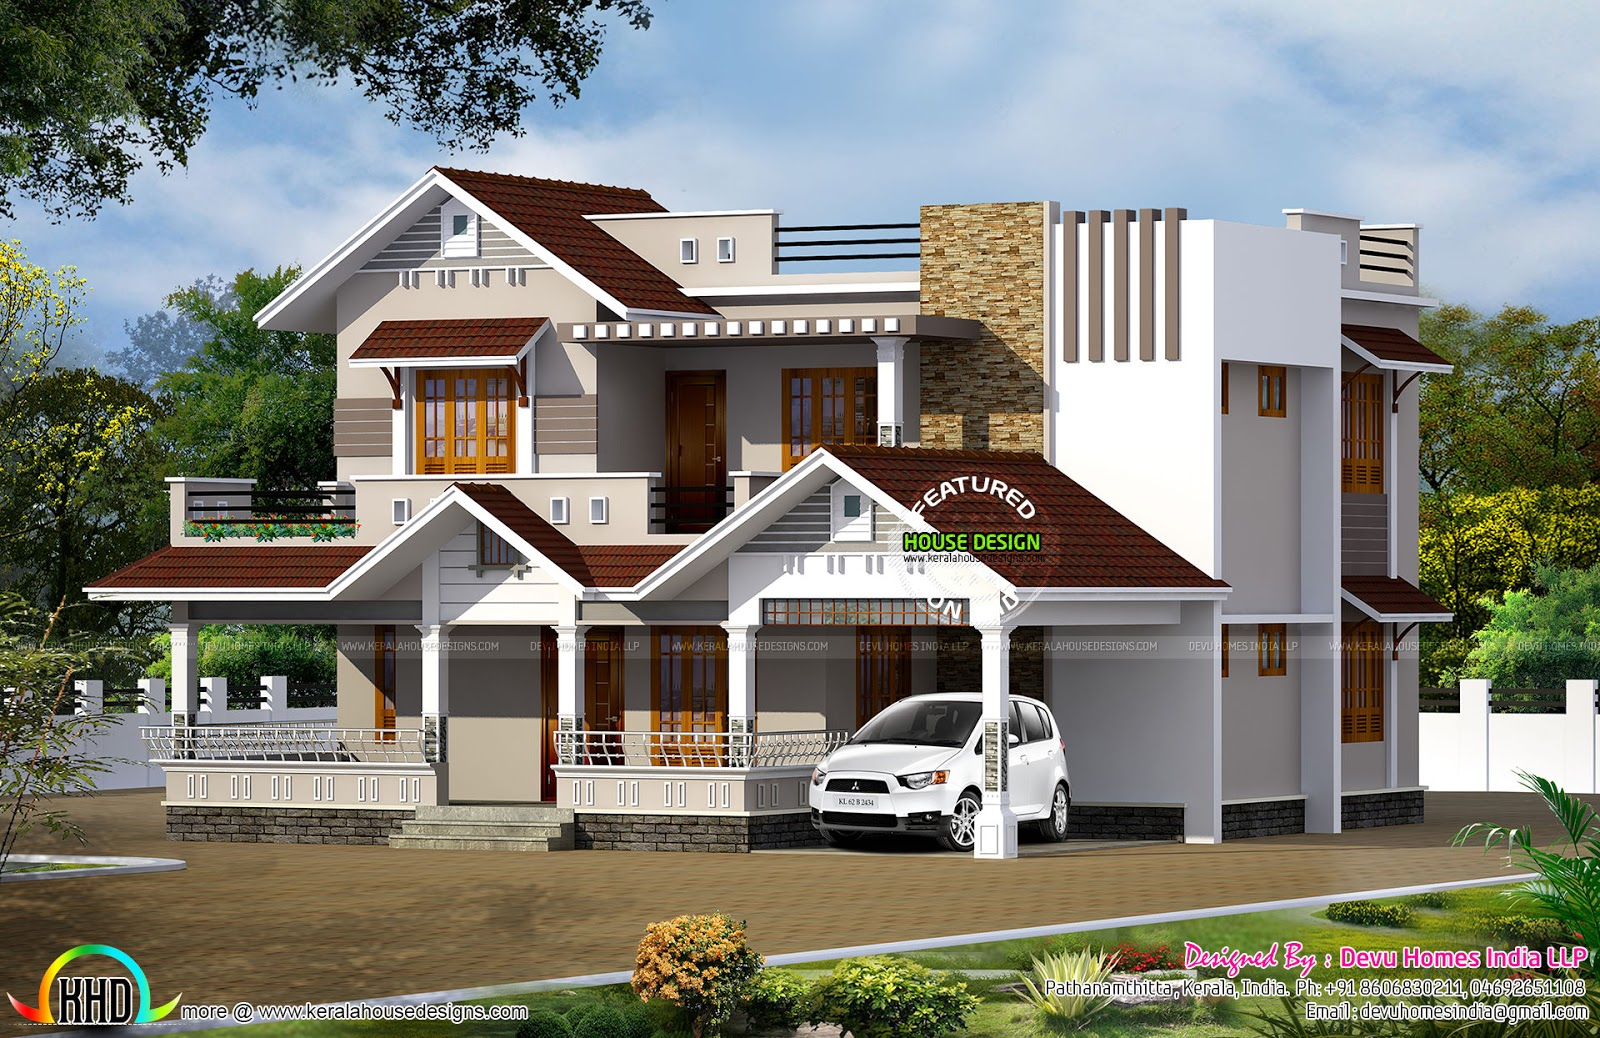 2370 sq ft vastu home modern style kerala home design and floor plans Home design and vastu